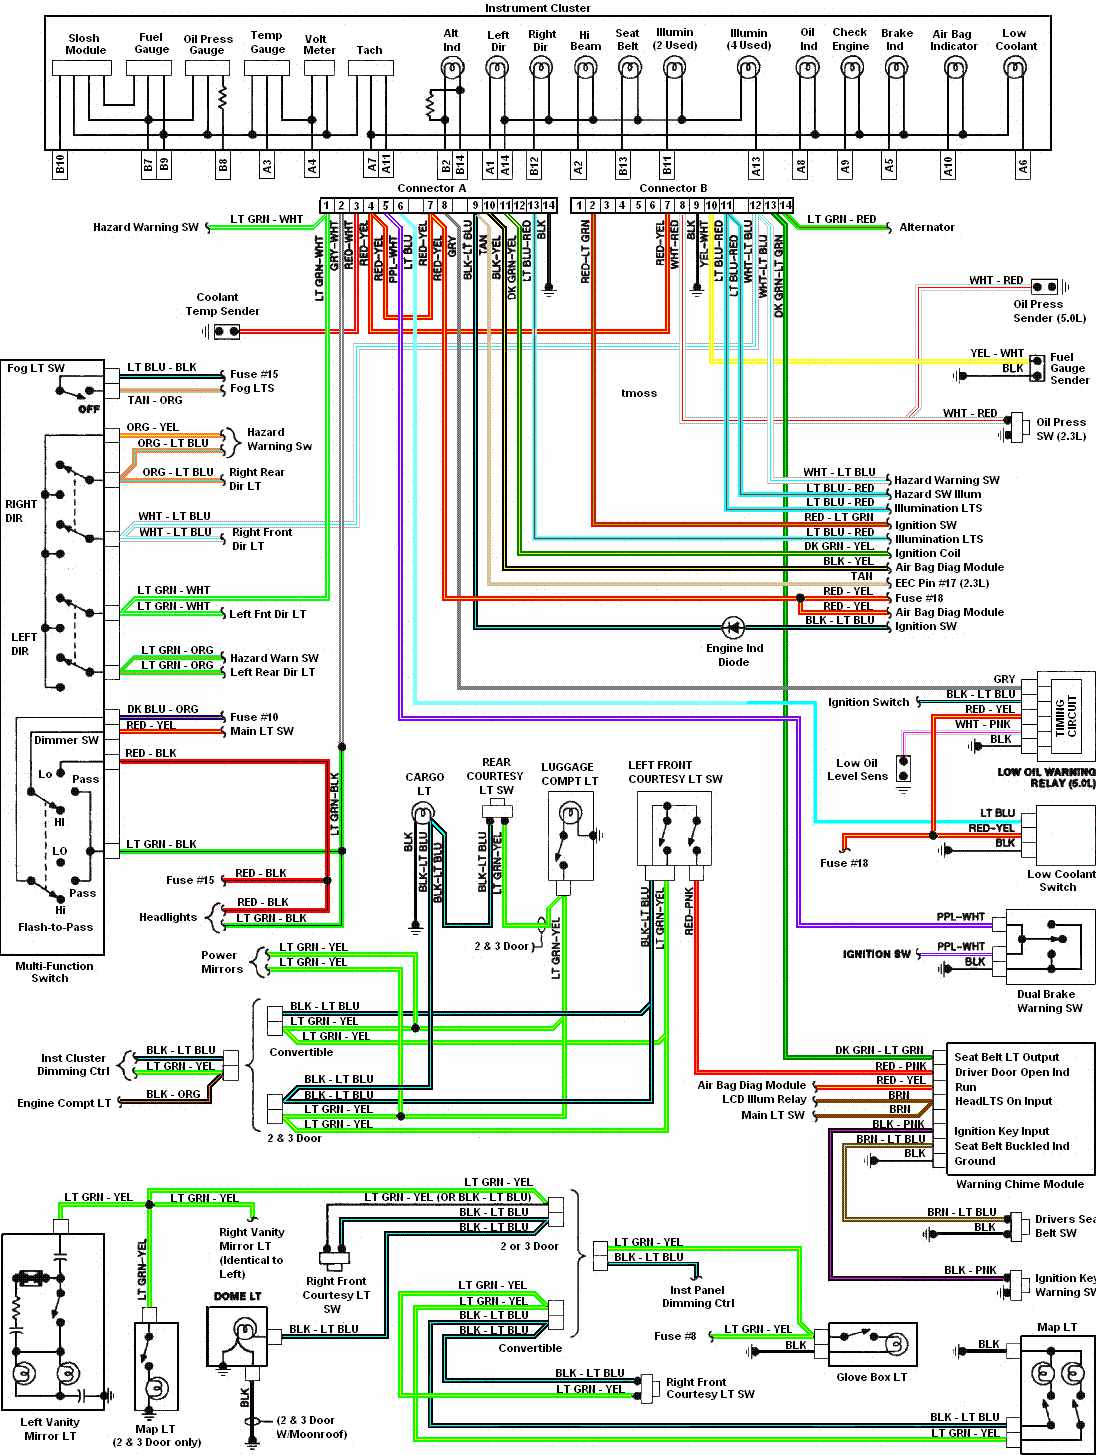 painless wiring diagram for 1965 chevy c10 with Instrument Cluster Wiring Diagrams Of on 1401 Alternator Upgrades Junkyard Builder additionally Showthread moreover 1970 Chevy Truck Wiring Harness besides 1960 Ford Truck Wiring together with 64 Chevy Truck Ignition Switch Wiring Diagram.